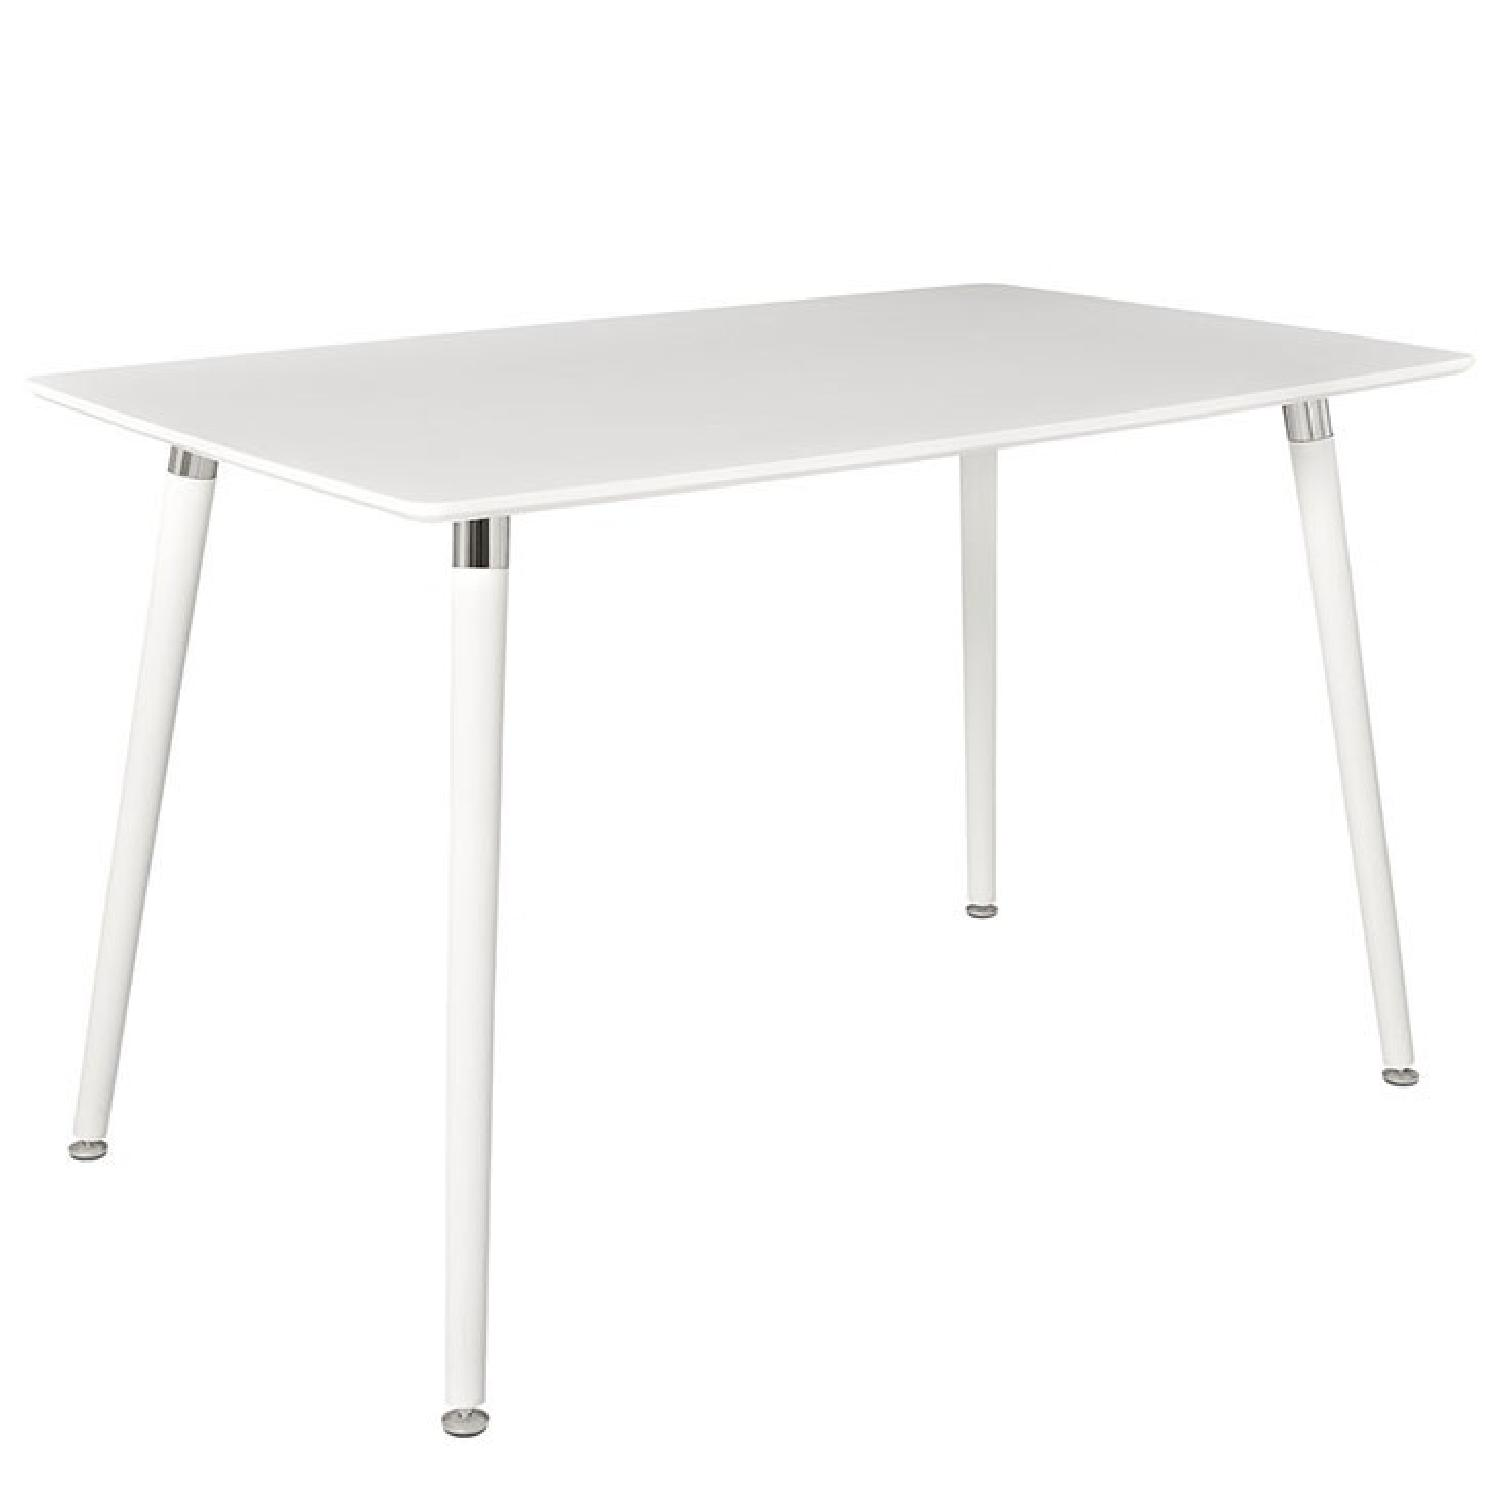 White Wood Dining Table - image-0